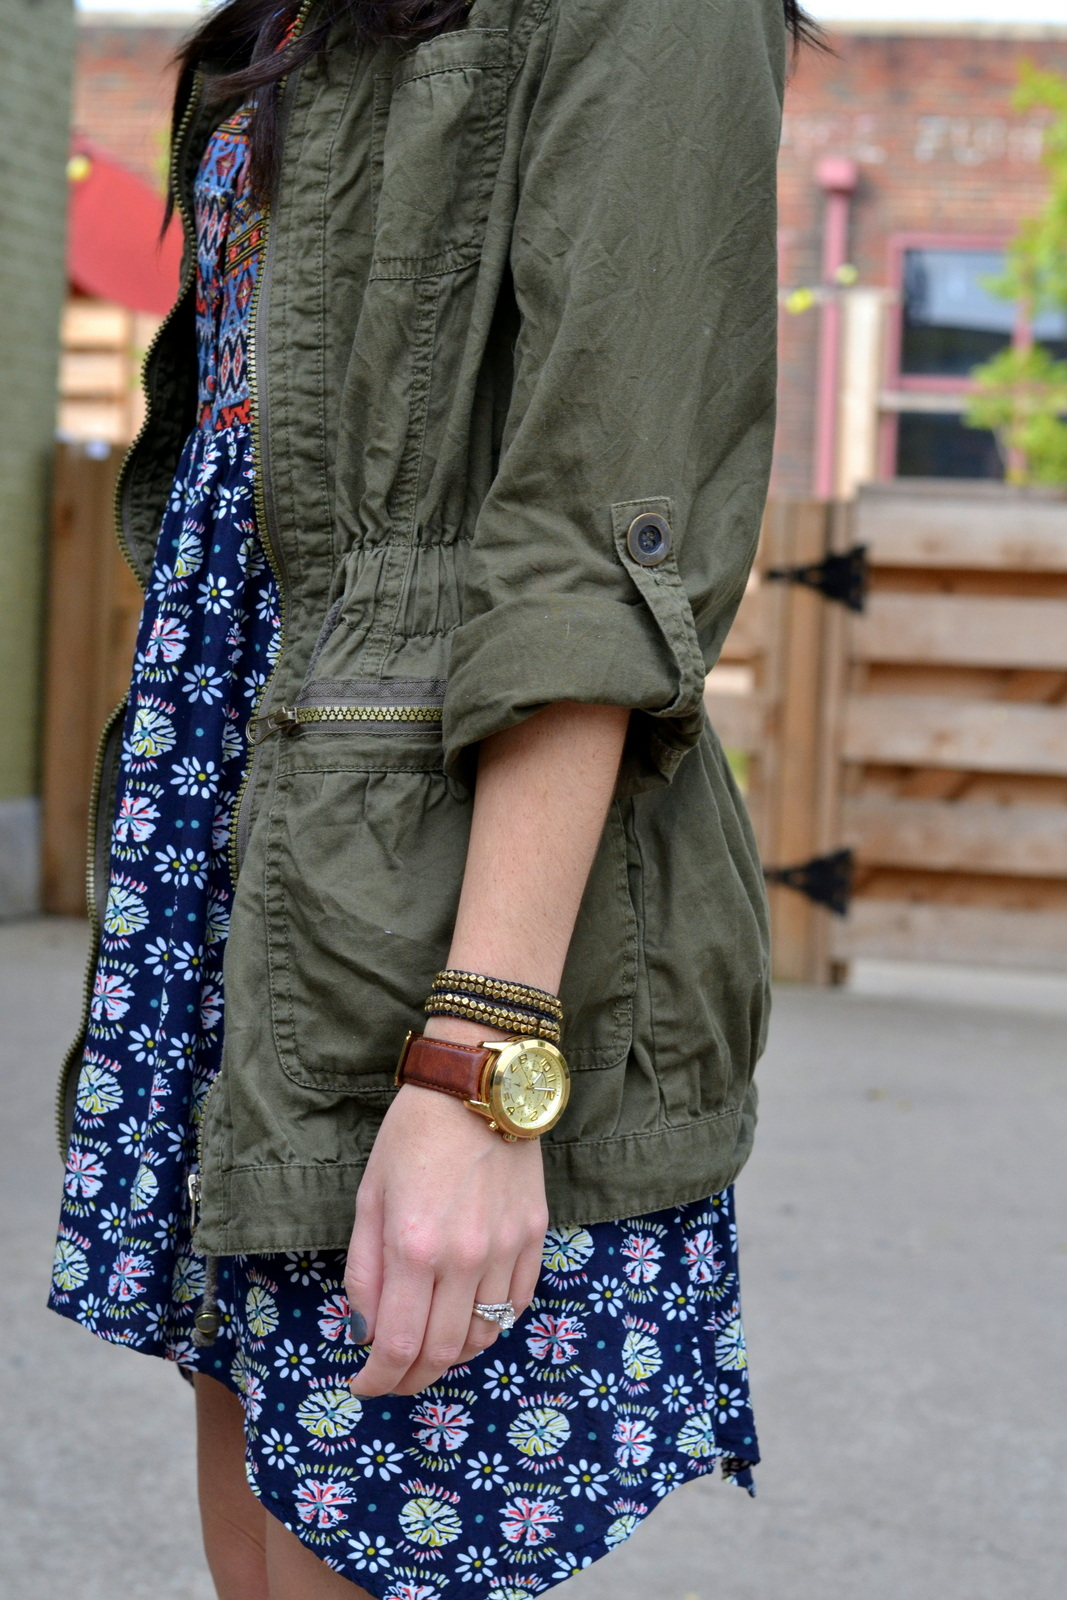 Olive_Military_Jacket_MK_Watch